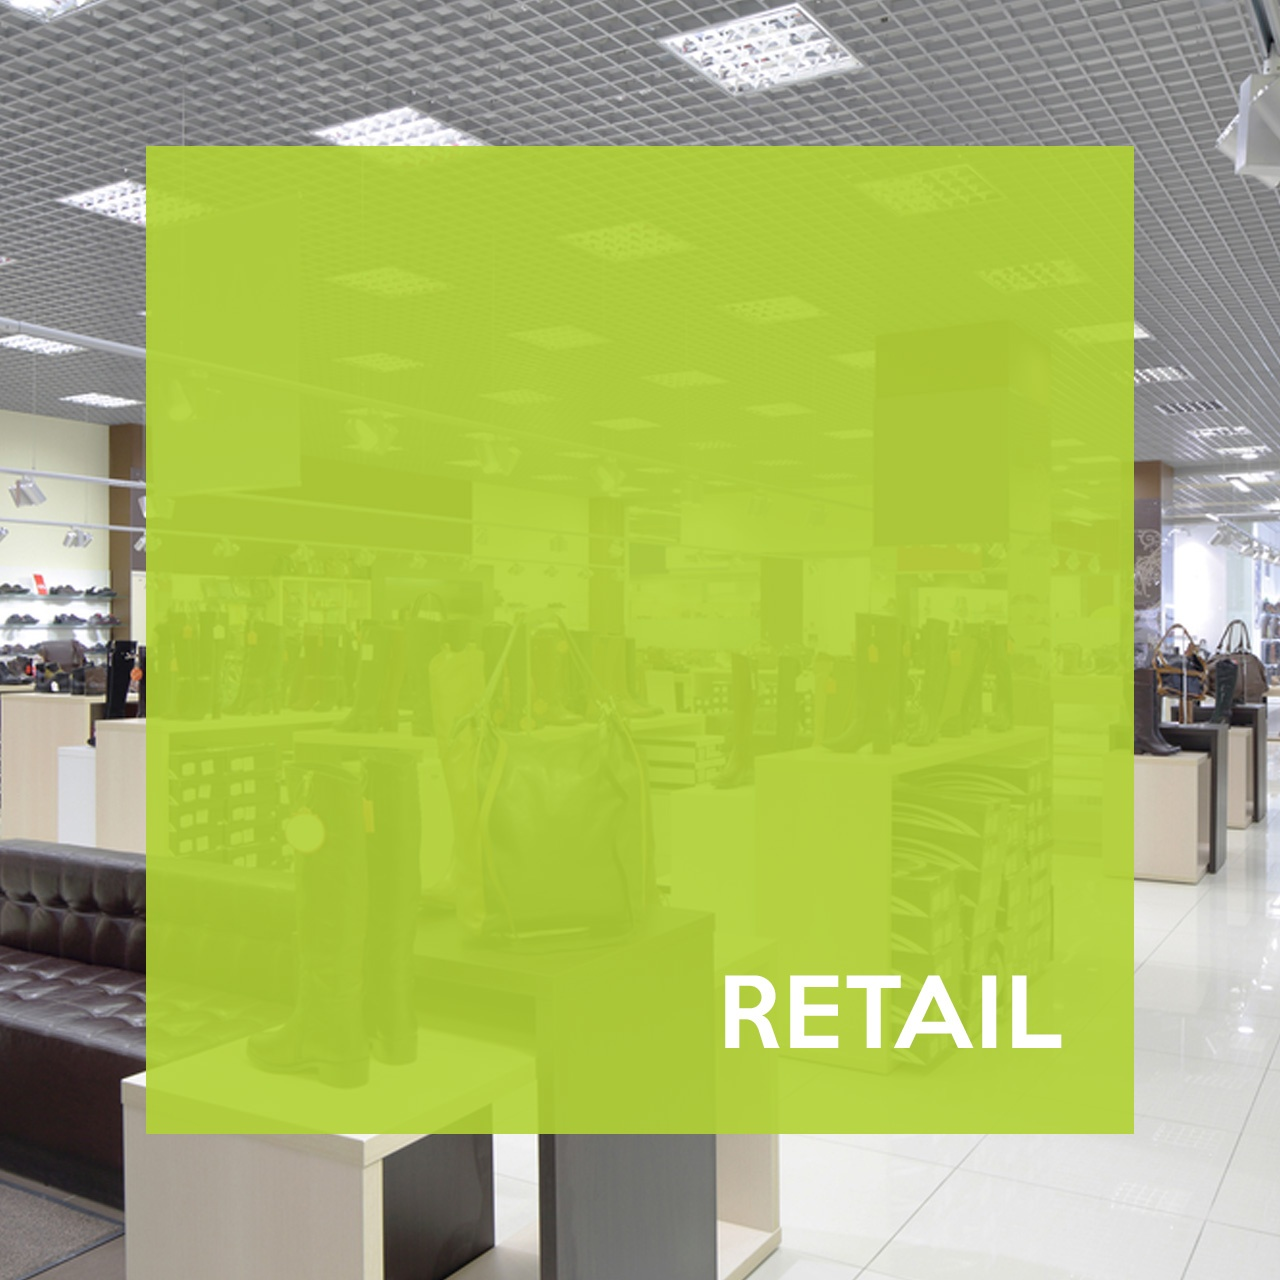 AMI_COMMERCIAL__retail_-_014.jpg